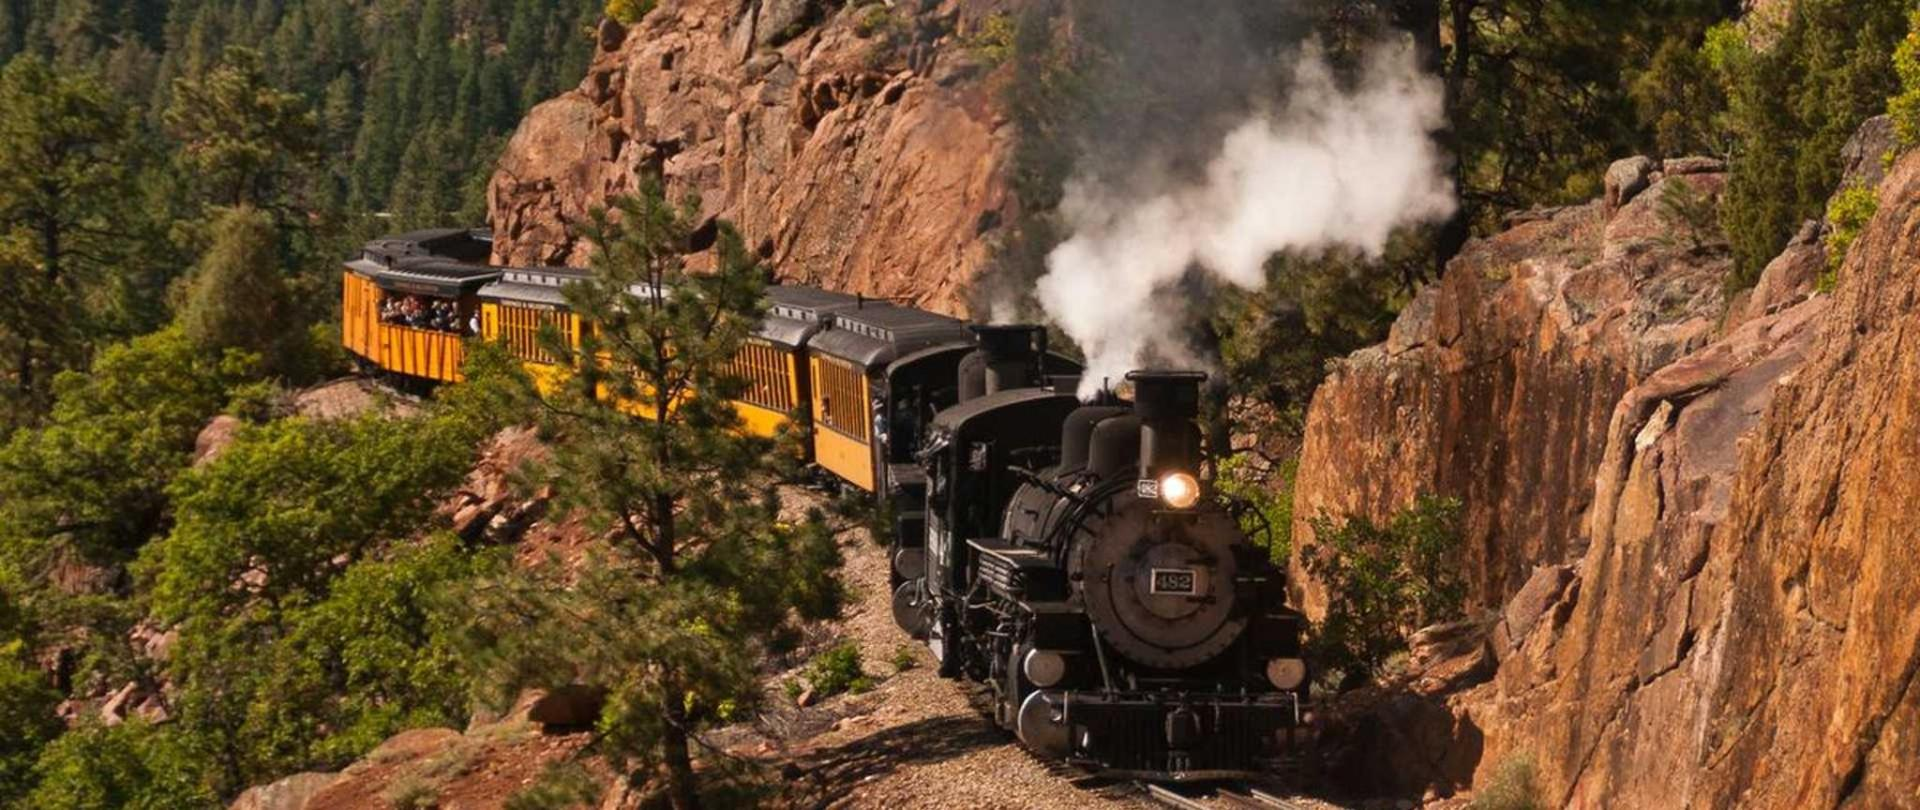 durango-narrow-gauge-in-canyon.jpg.1920x810_default.jpg